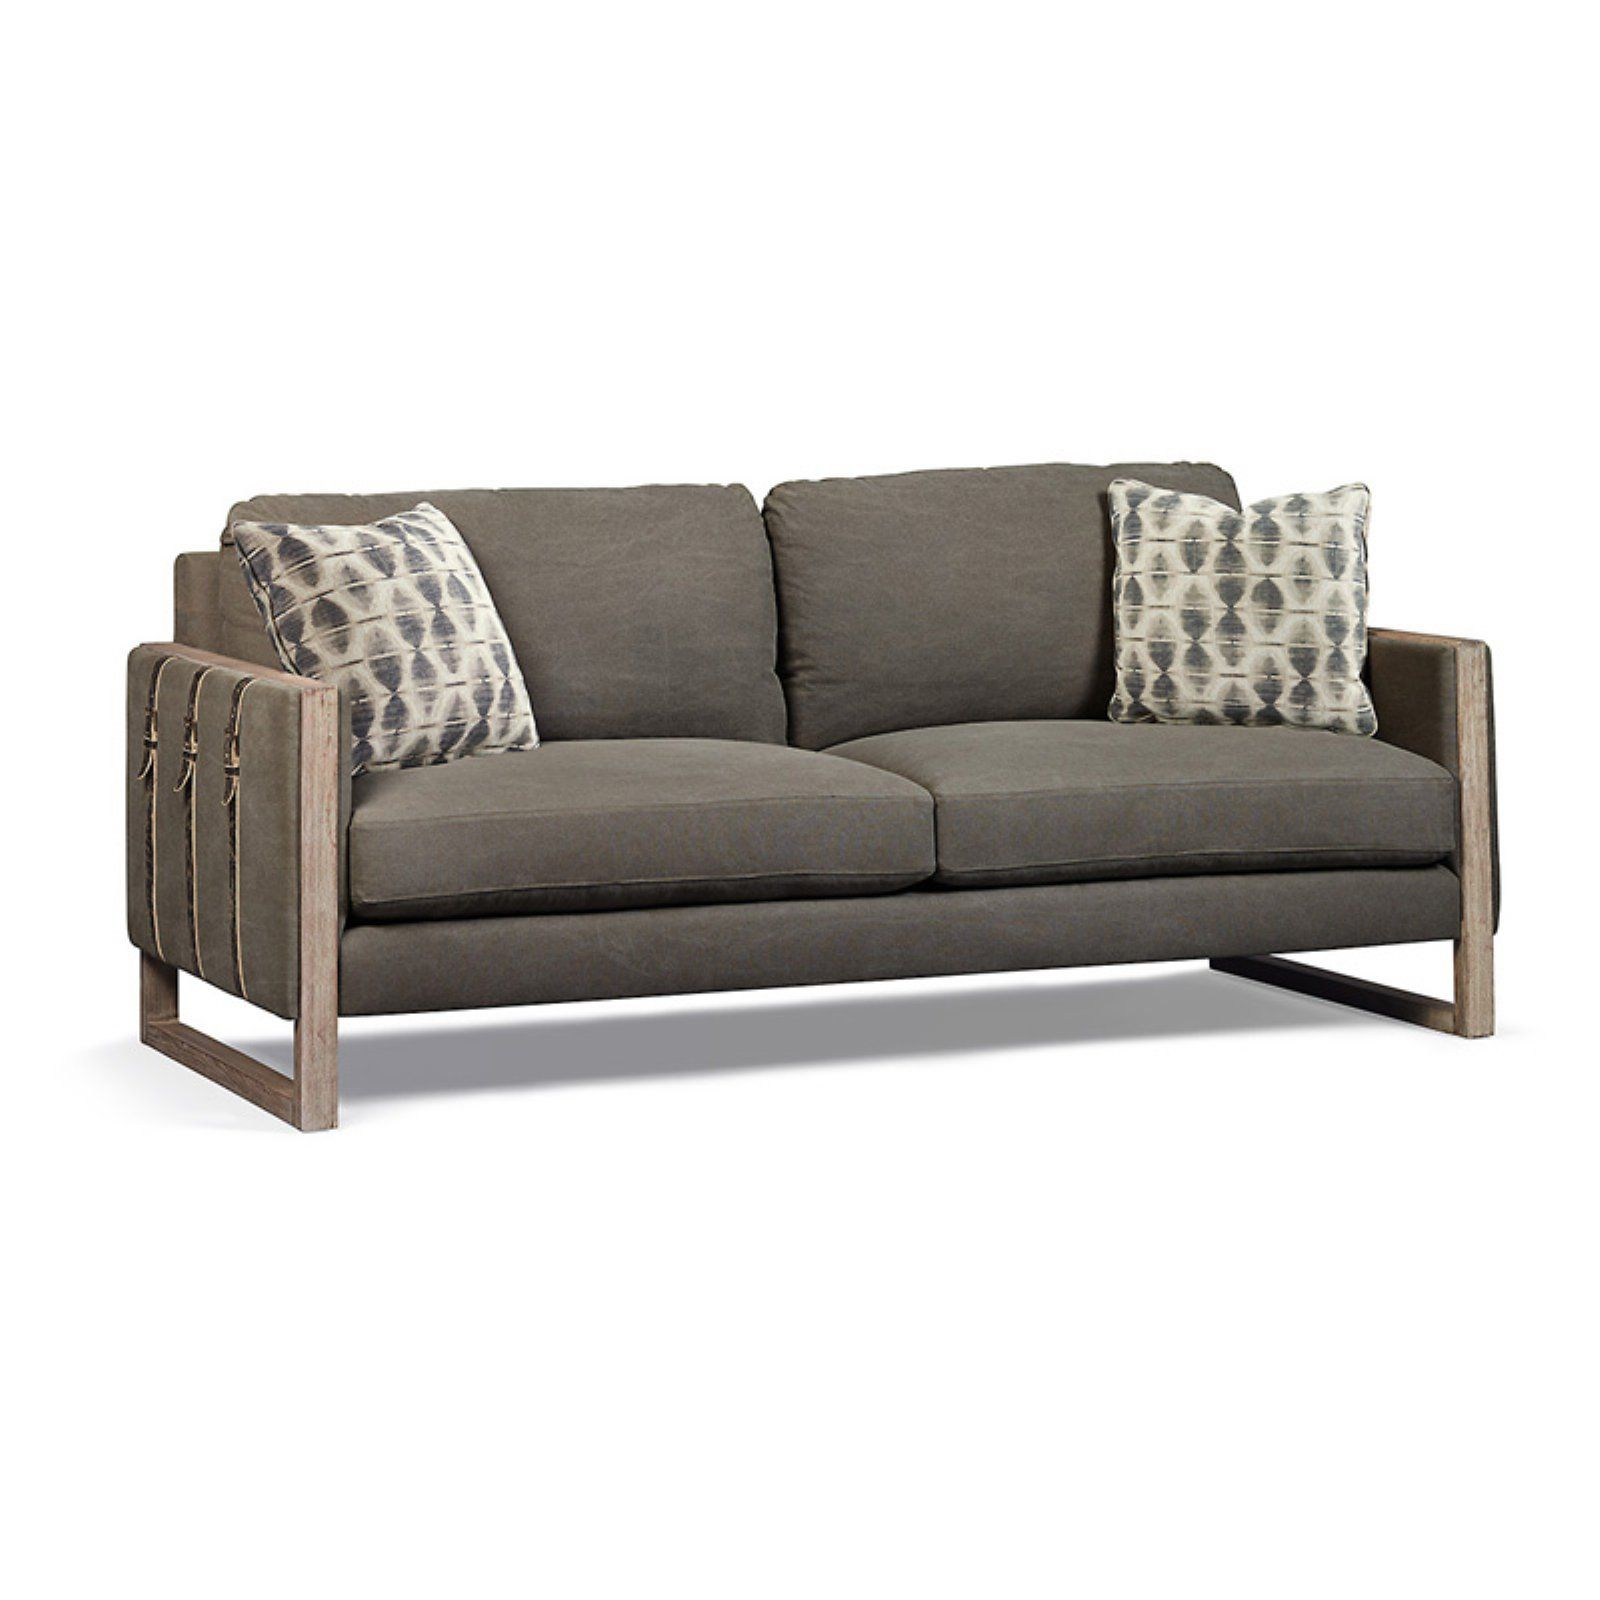 A.R.T. Furniture Epicenters Austin Townes Sofa | Products in ...